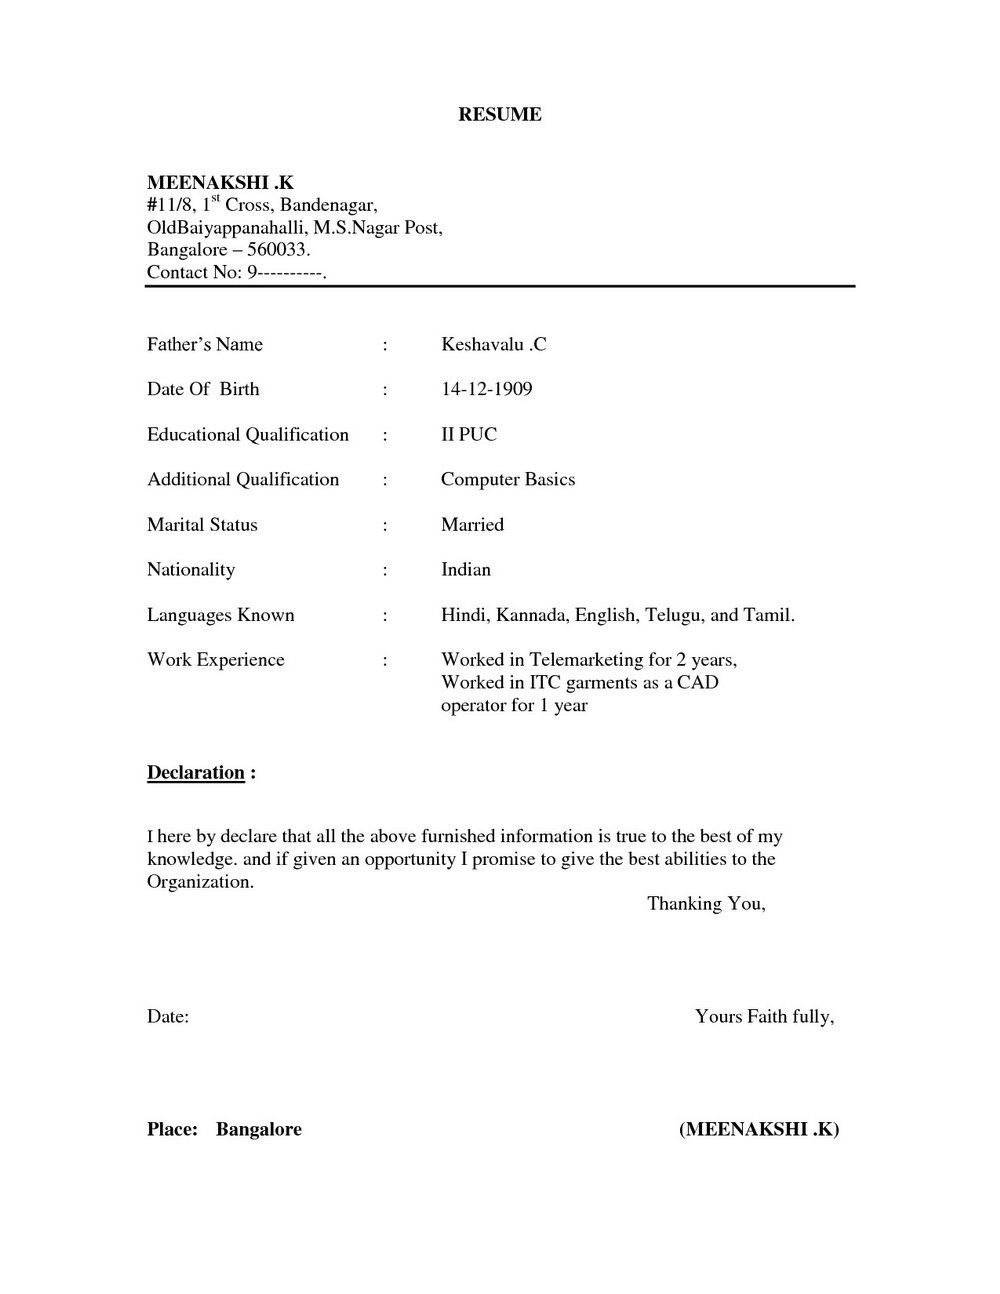 Resume Format For Freshers Word File Download